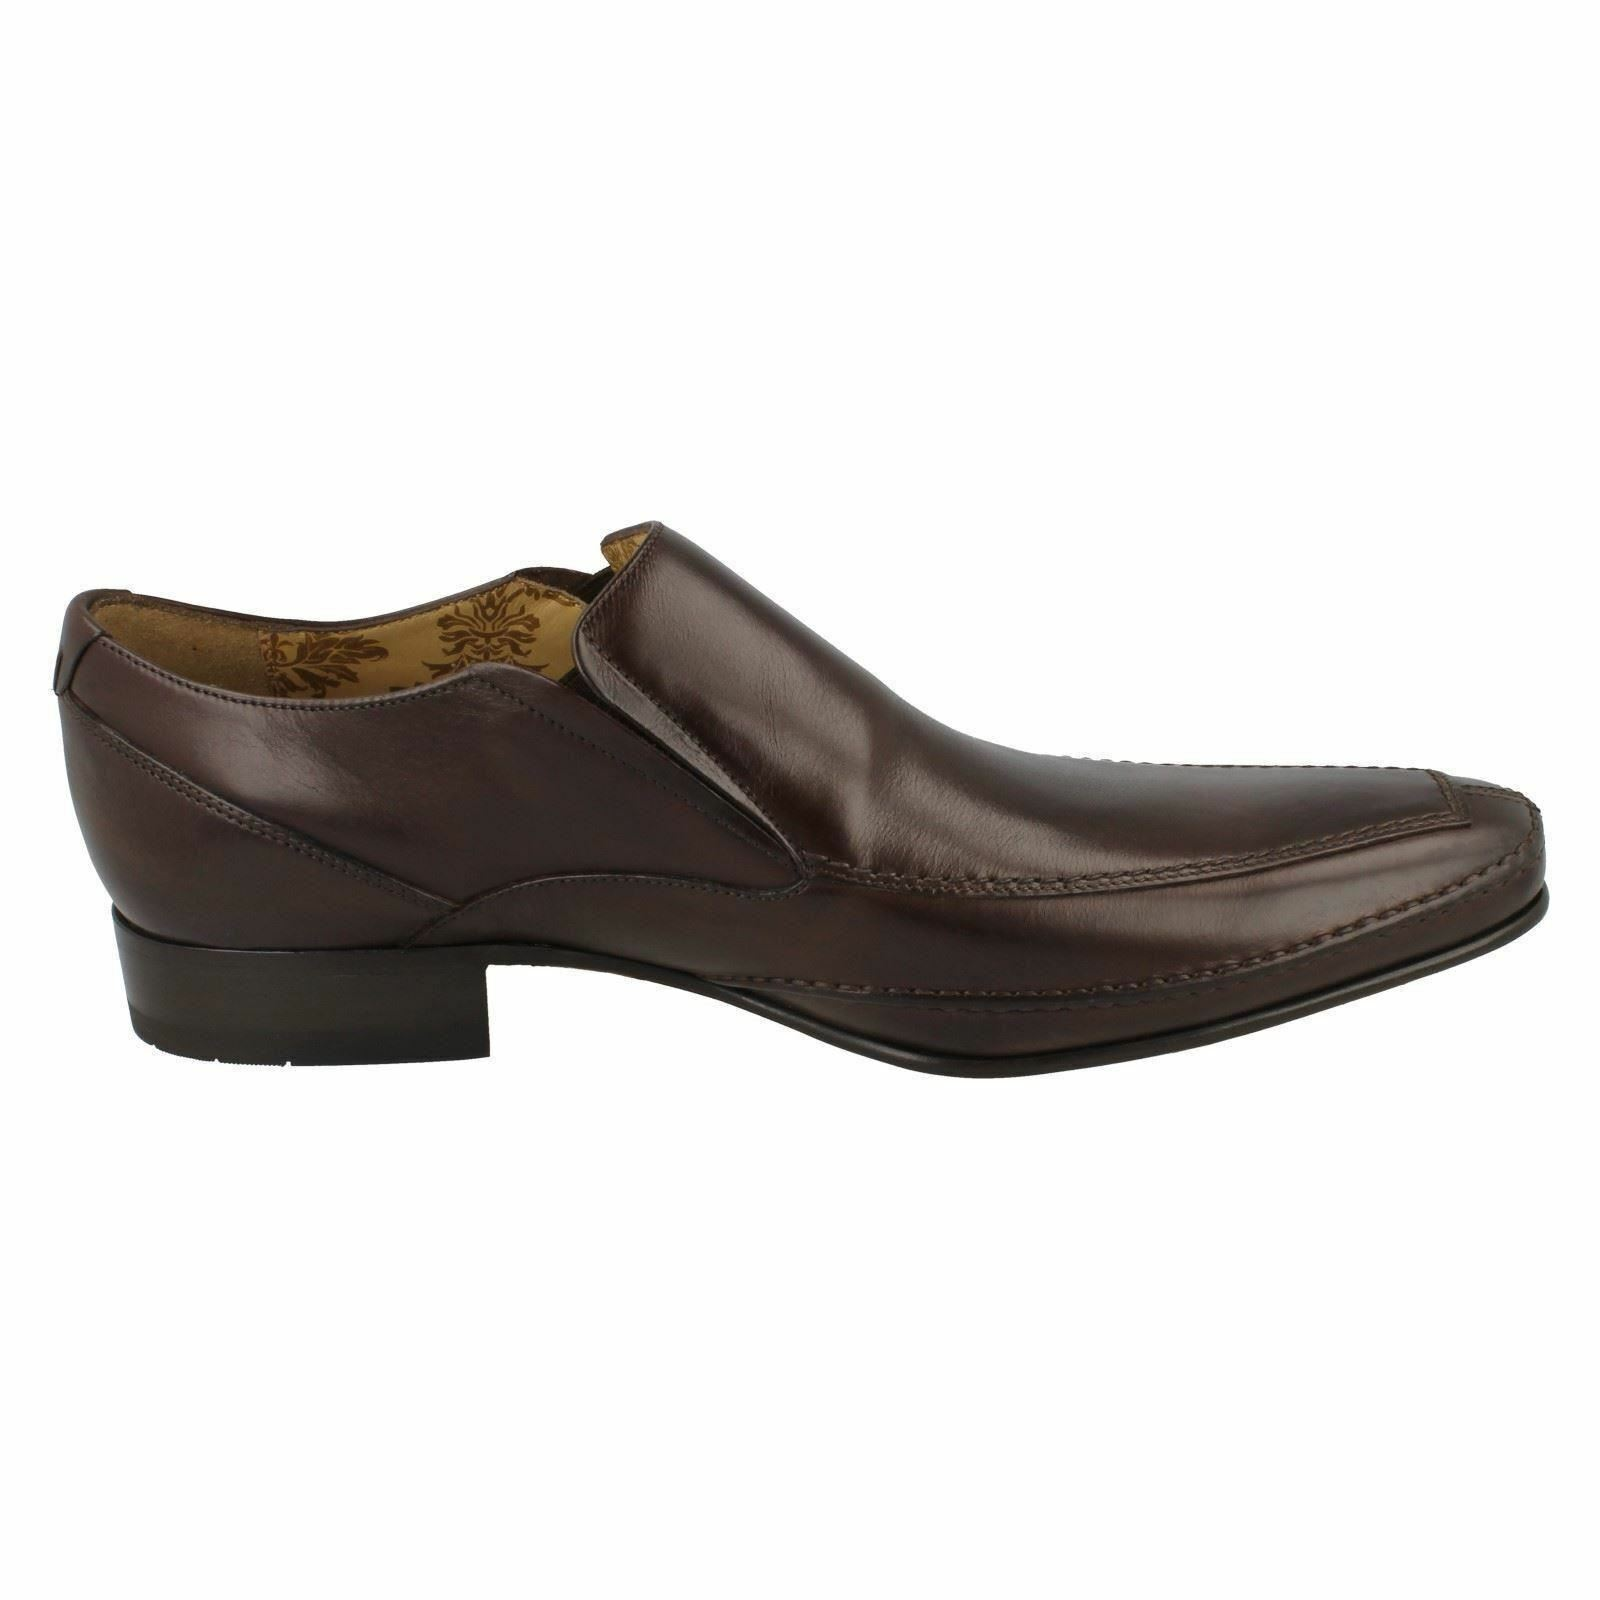 Herren LOAKE LEATHER SLIP ON ON SLIP FORMAL SQUARE TOE SMART OFFICE Schuhe SIZE MATTHEWS c70b8d